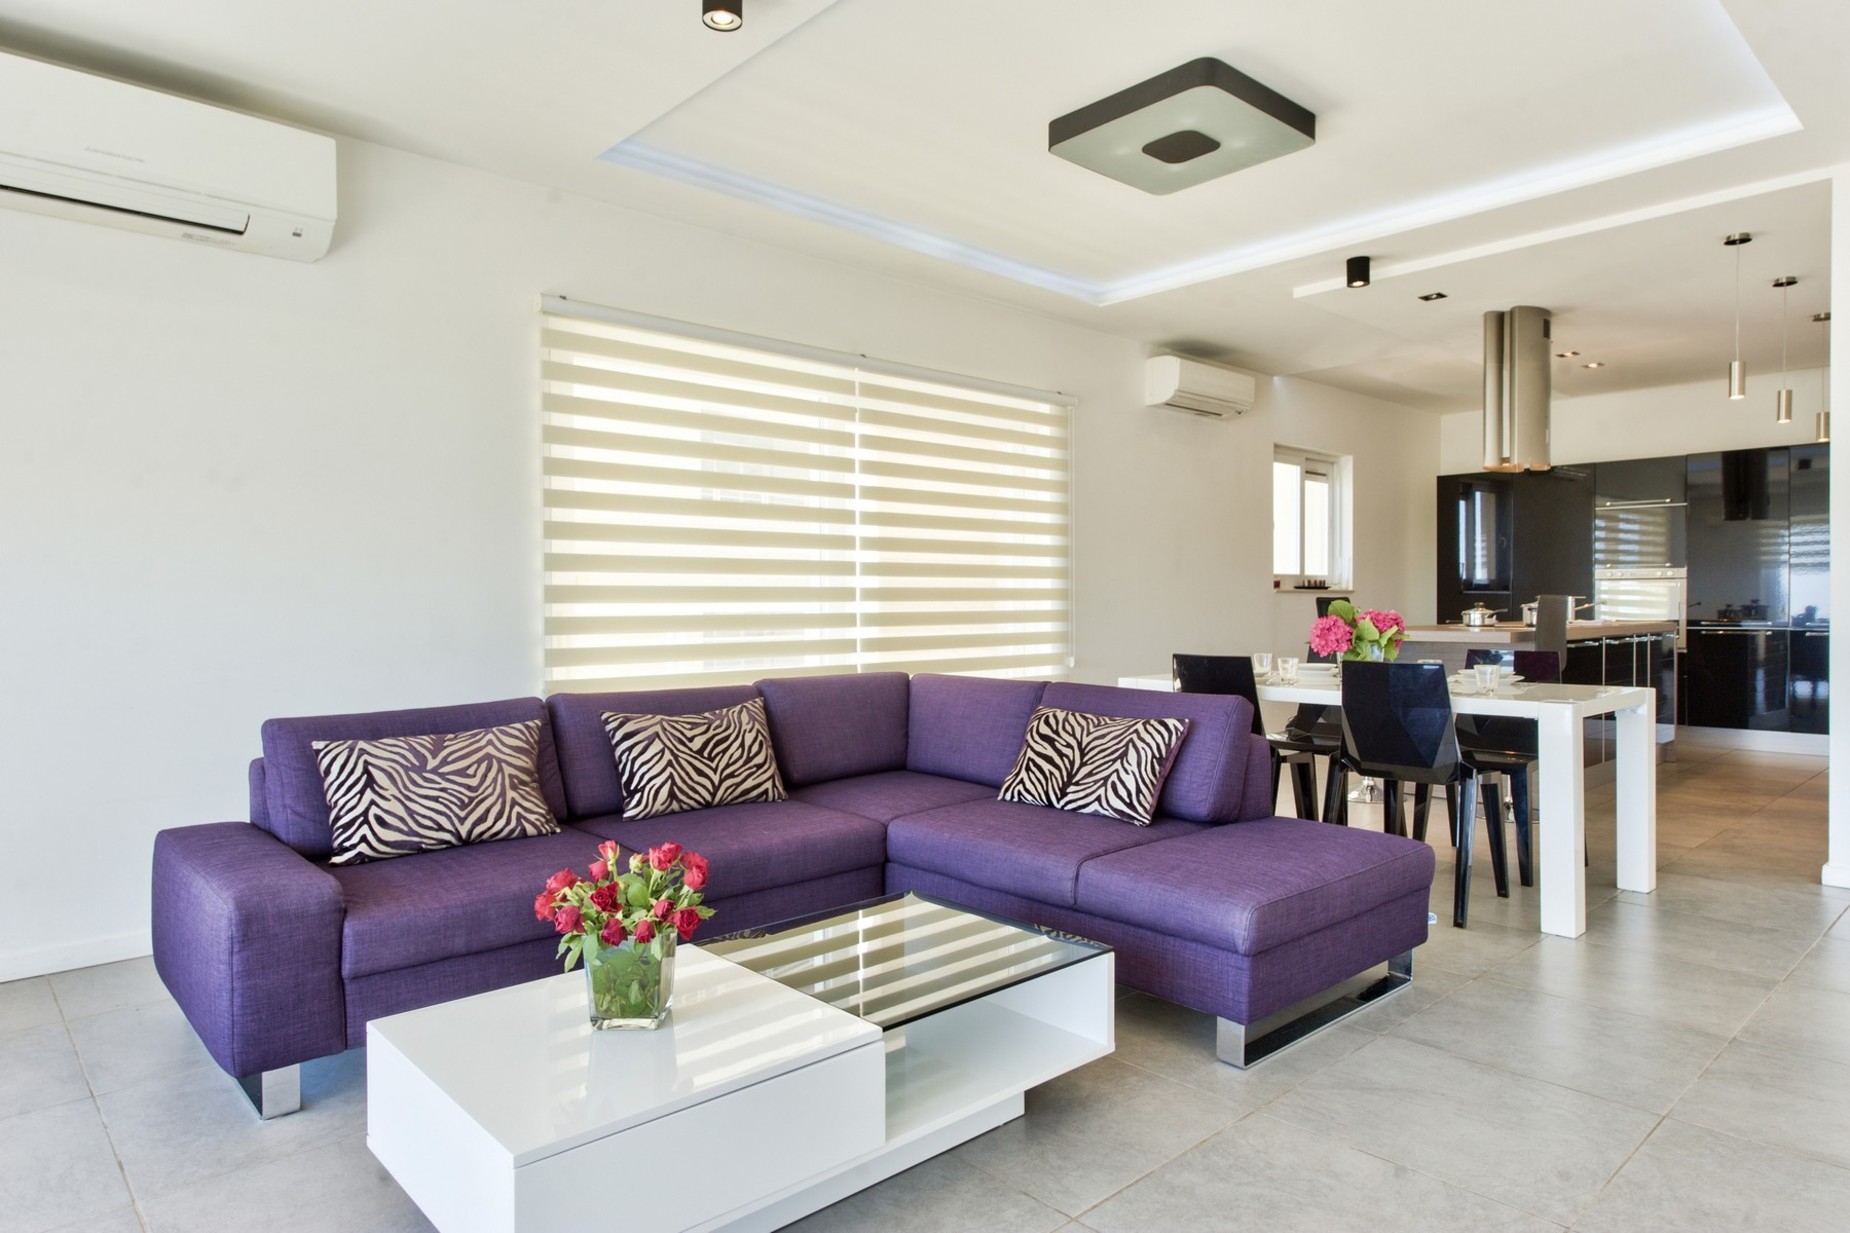 4 bed Apartment For Sale in Sliema, Sliema - thumb 8